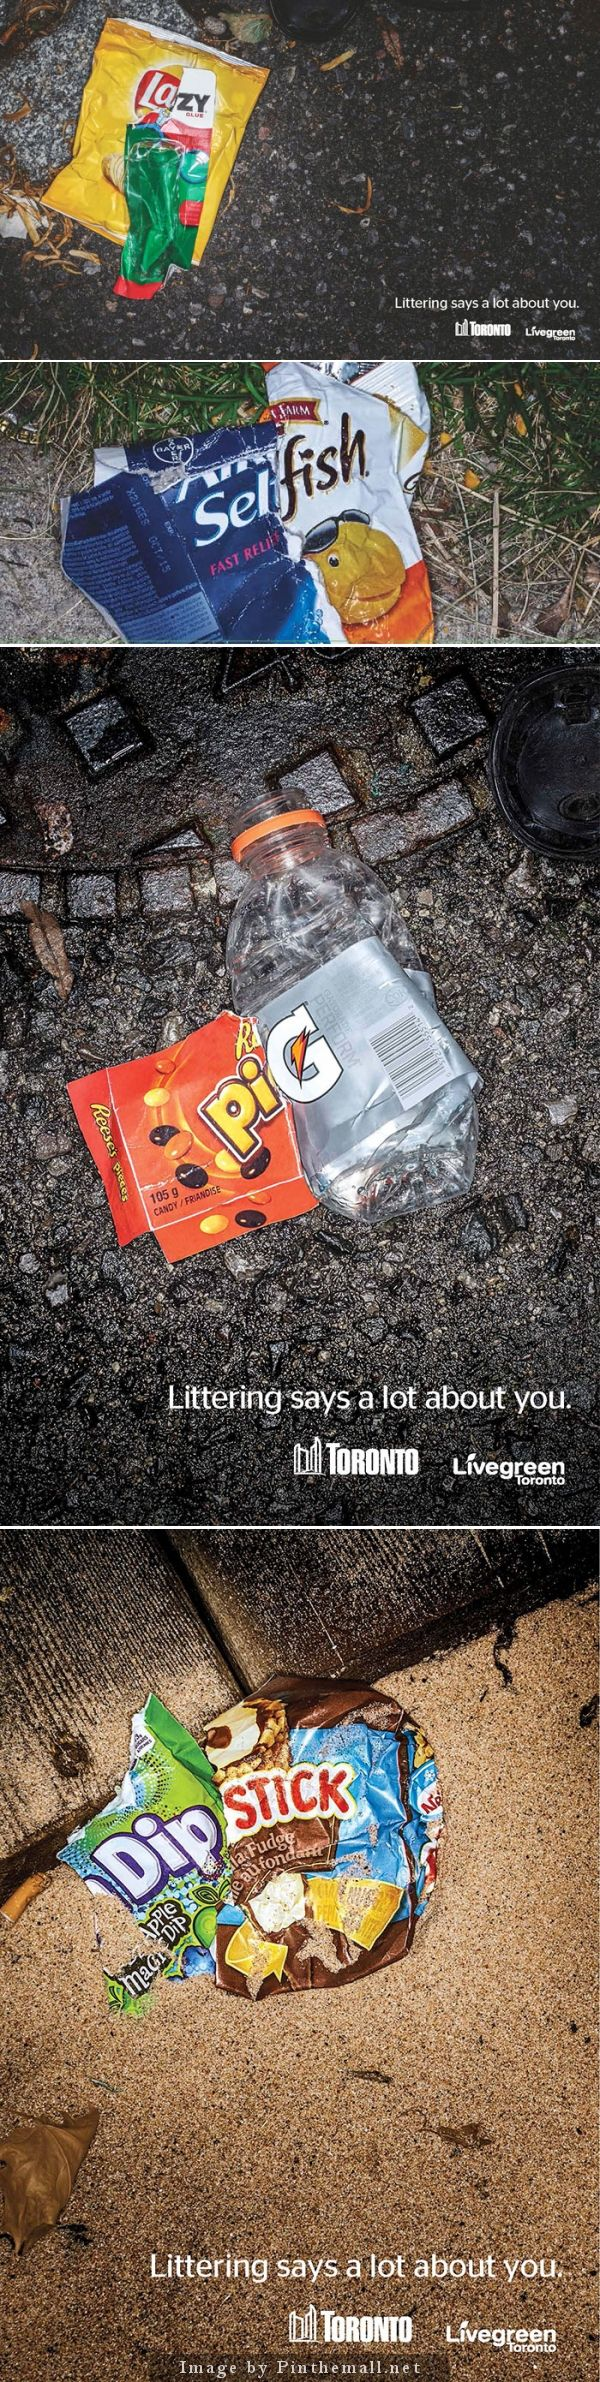 Toronto's Clever Anti-Littering Ads Use Trash To Mock Litterers